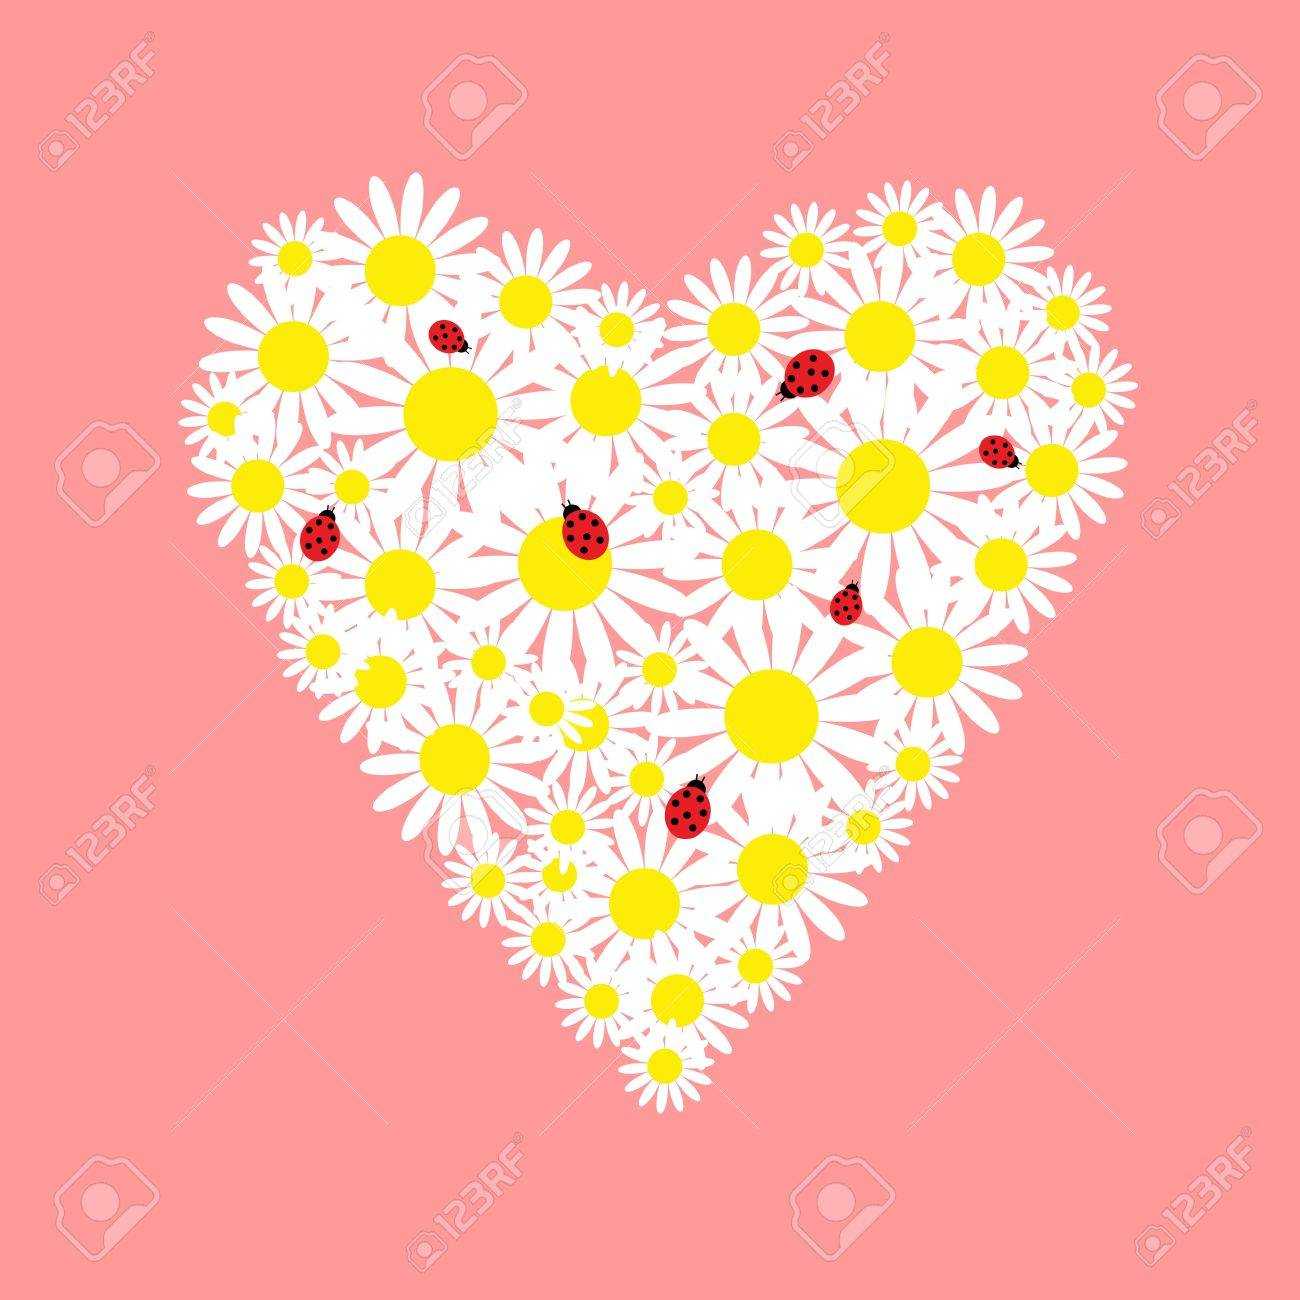 Heart of daisies with a red ladybugs Stock Vector - 16645766